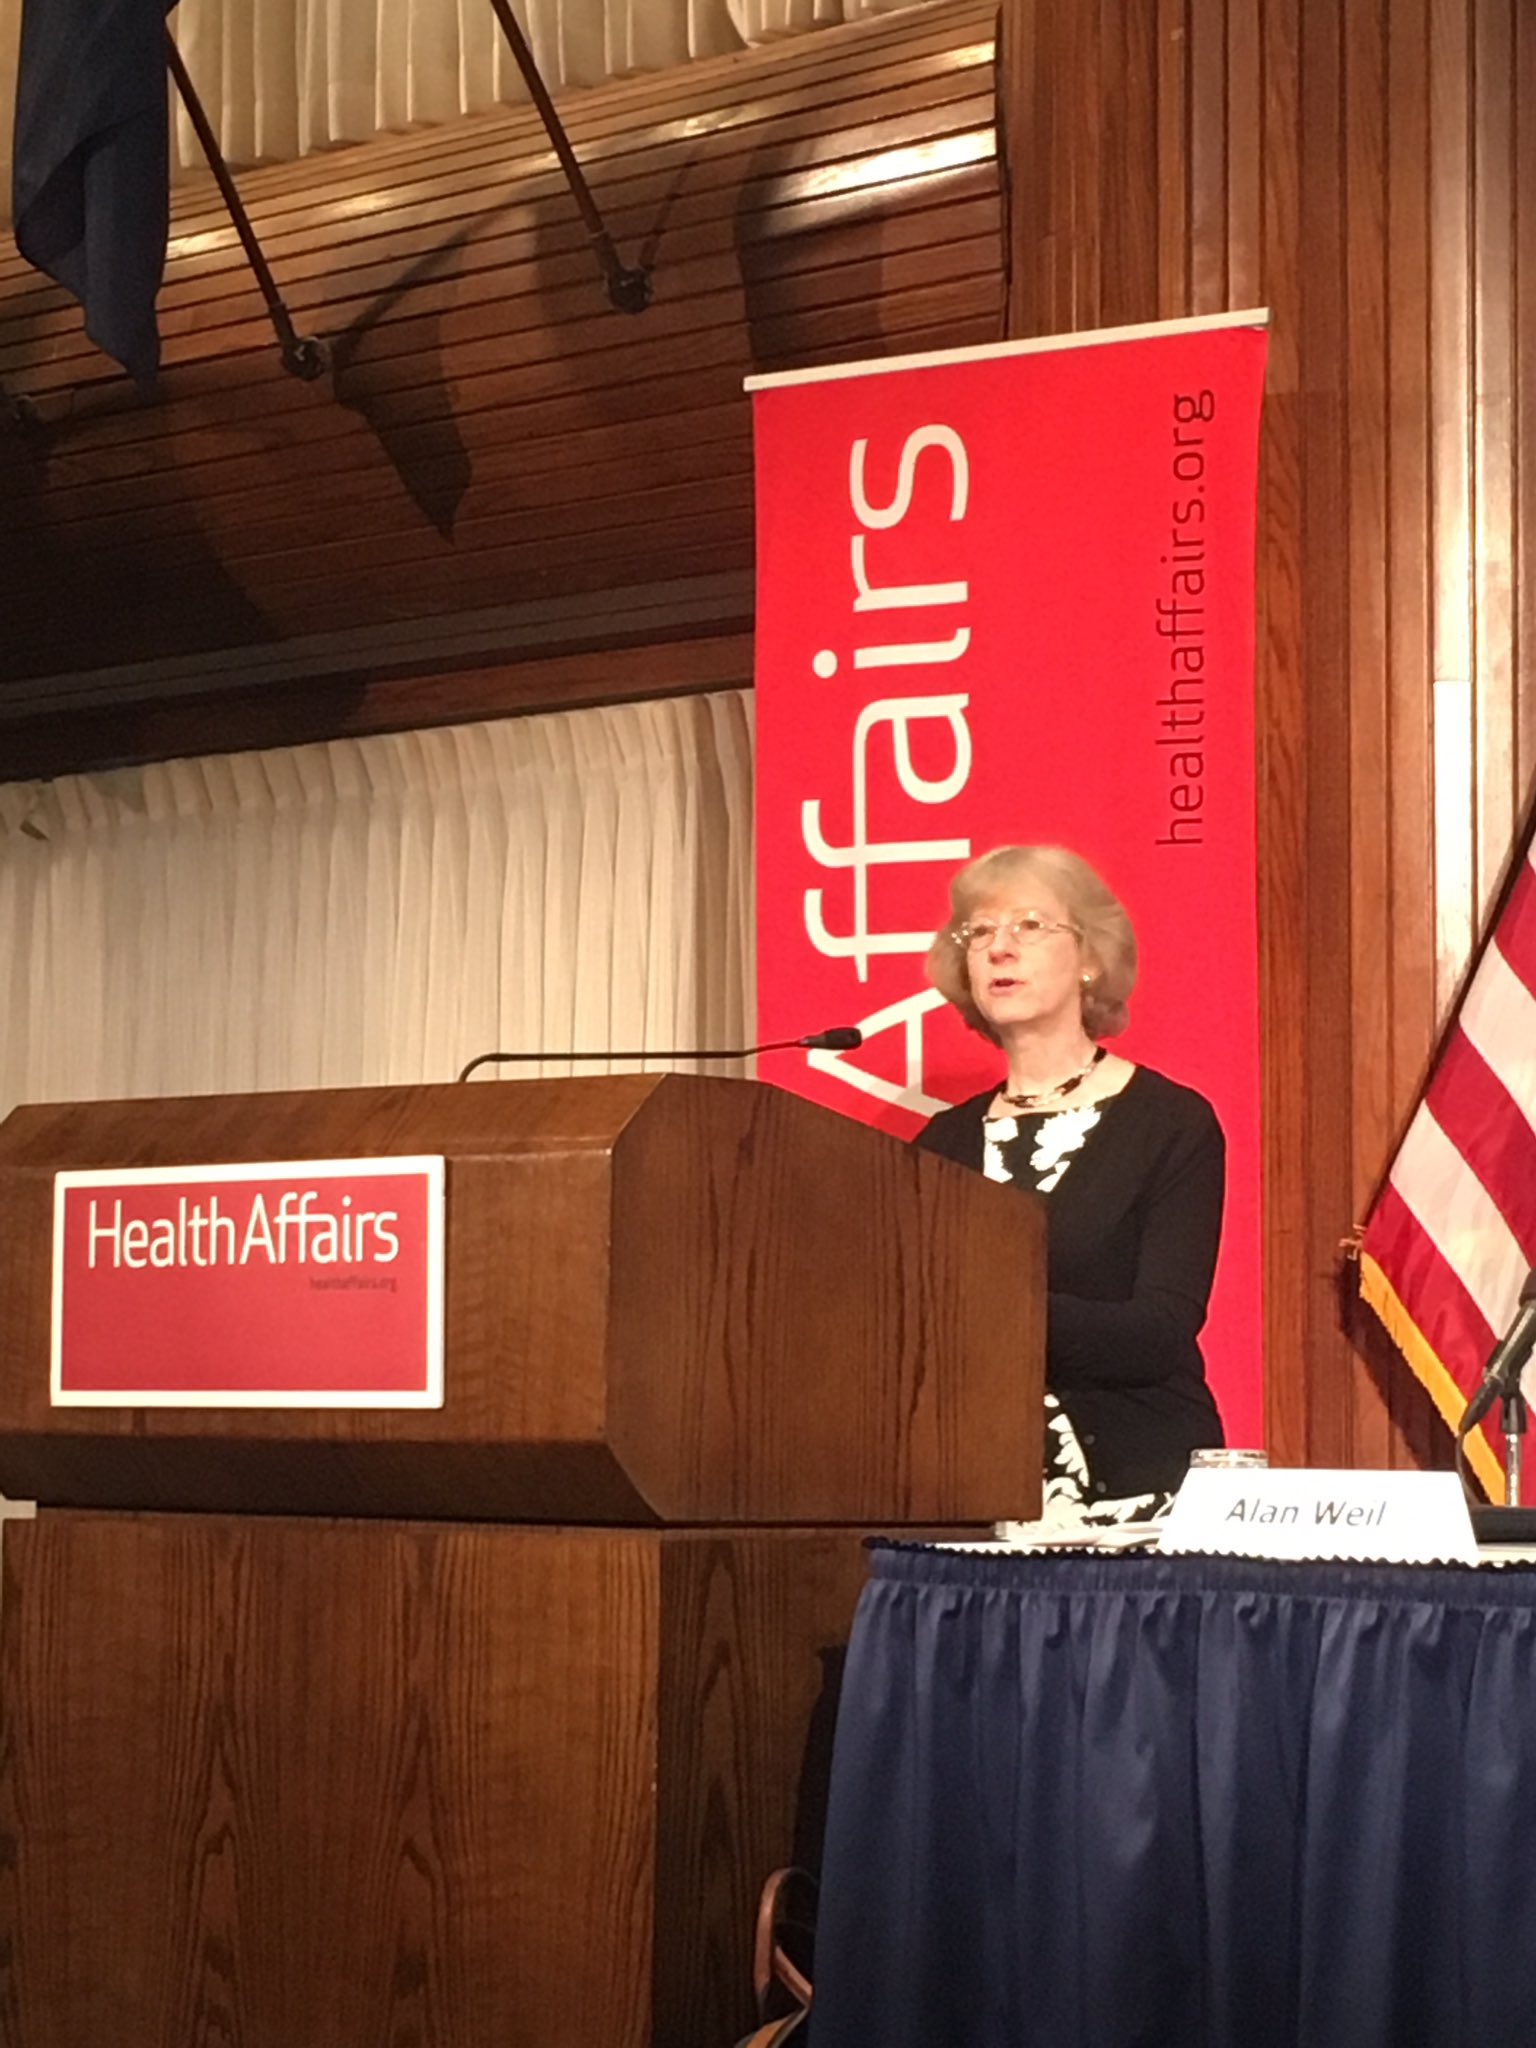 If you look at our #healthcare system, it clearly wasn't designed w/ patients in mind. -Cynthia Barnard #valuepayment @Health_Affairs https://t.co/3RwhNr0Fix